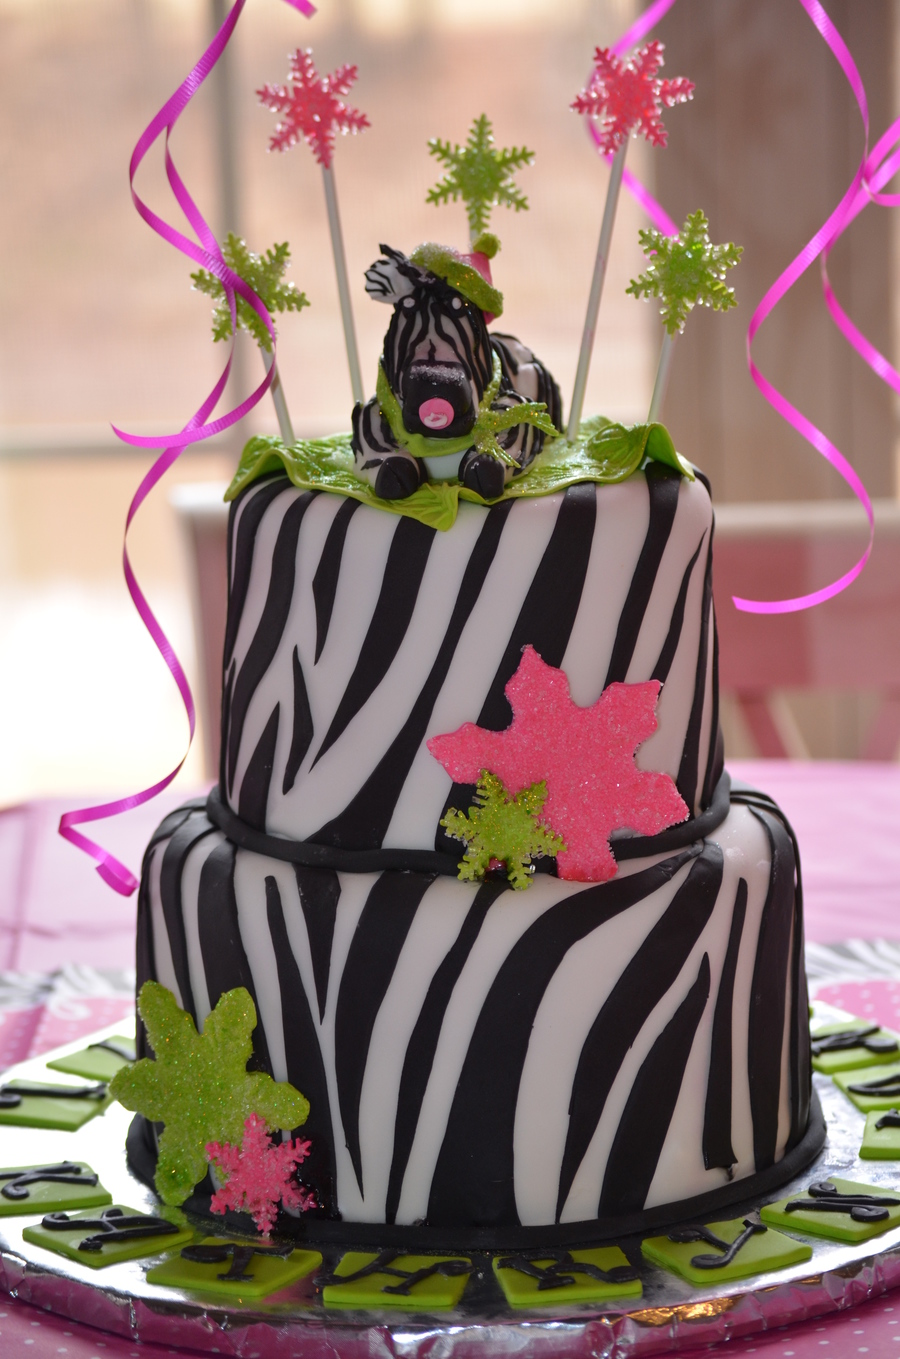 Wintery Zebra Baby Shower Cake For My Daughters 3Rd Baby Cake Was Also Zebra Striped Inside on Cake Central